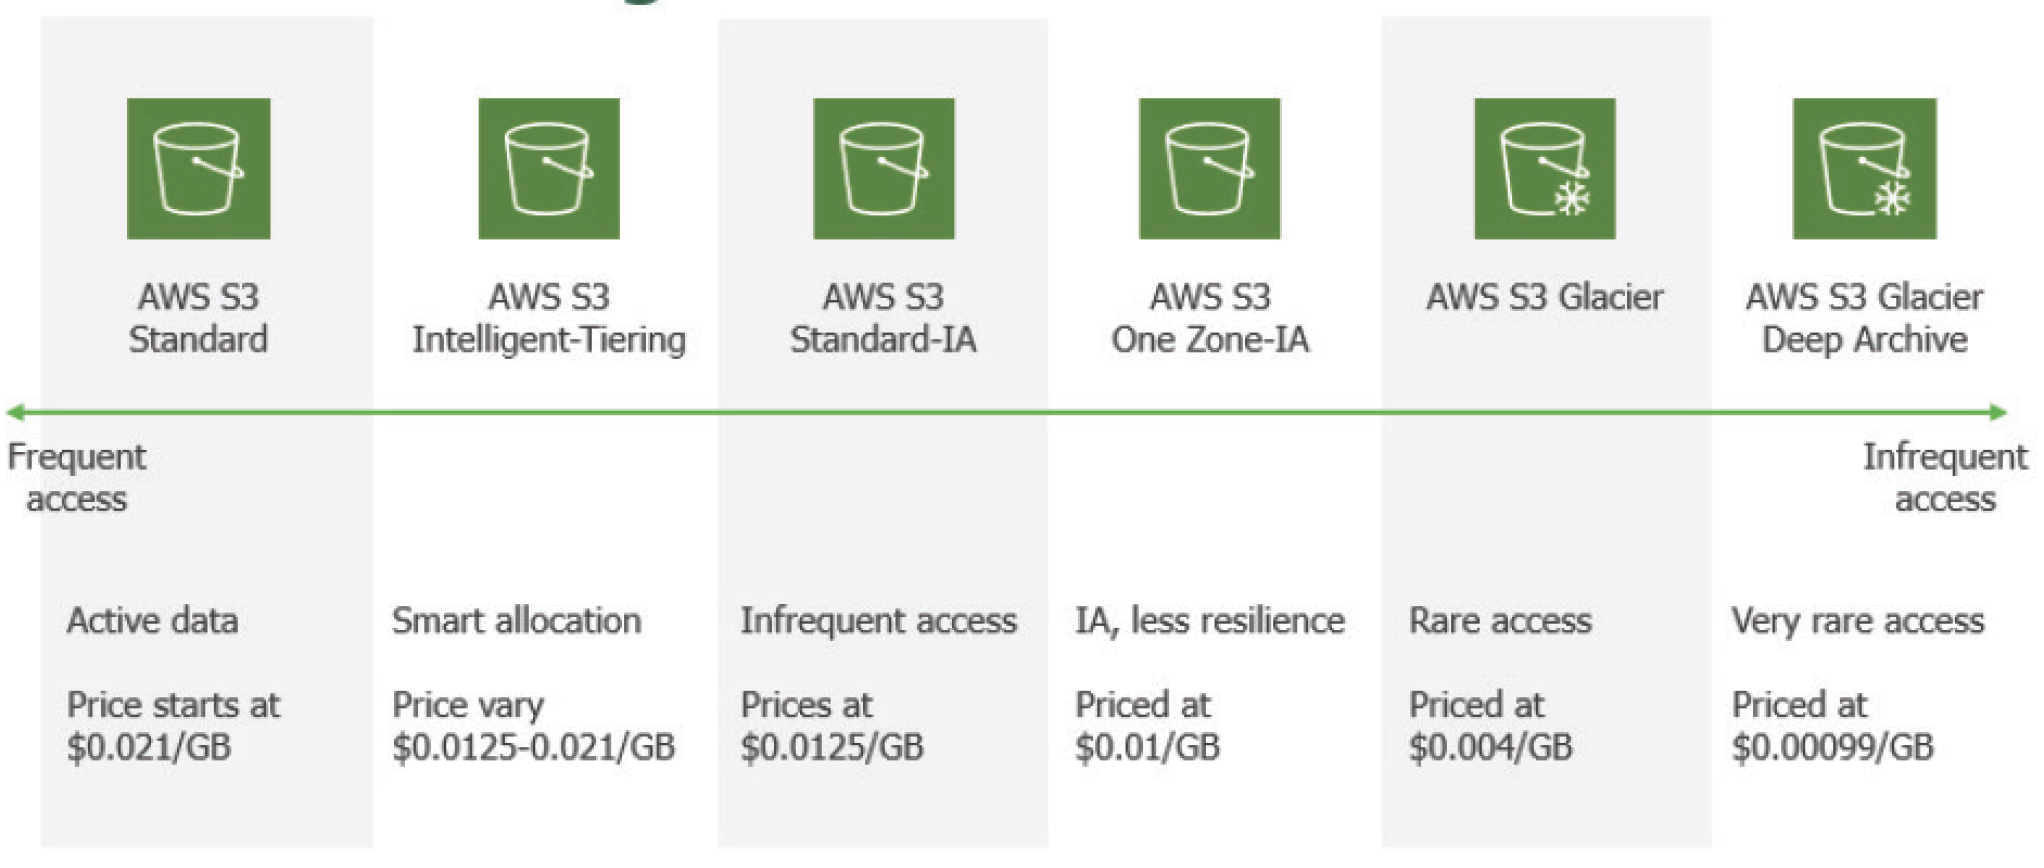 Figure 6. AWS S3 storage classes partial comparison